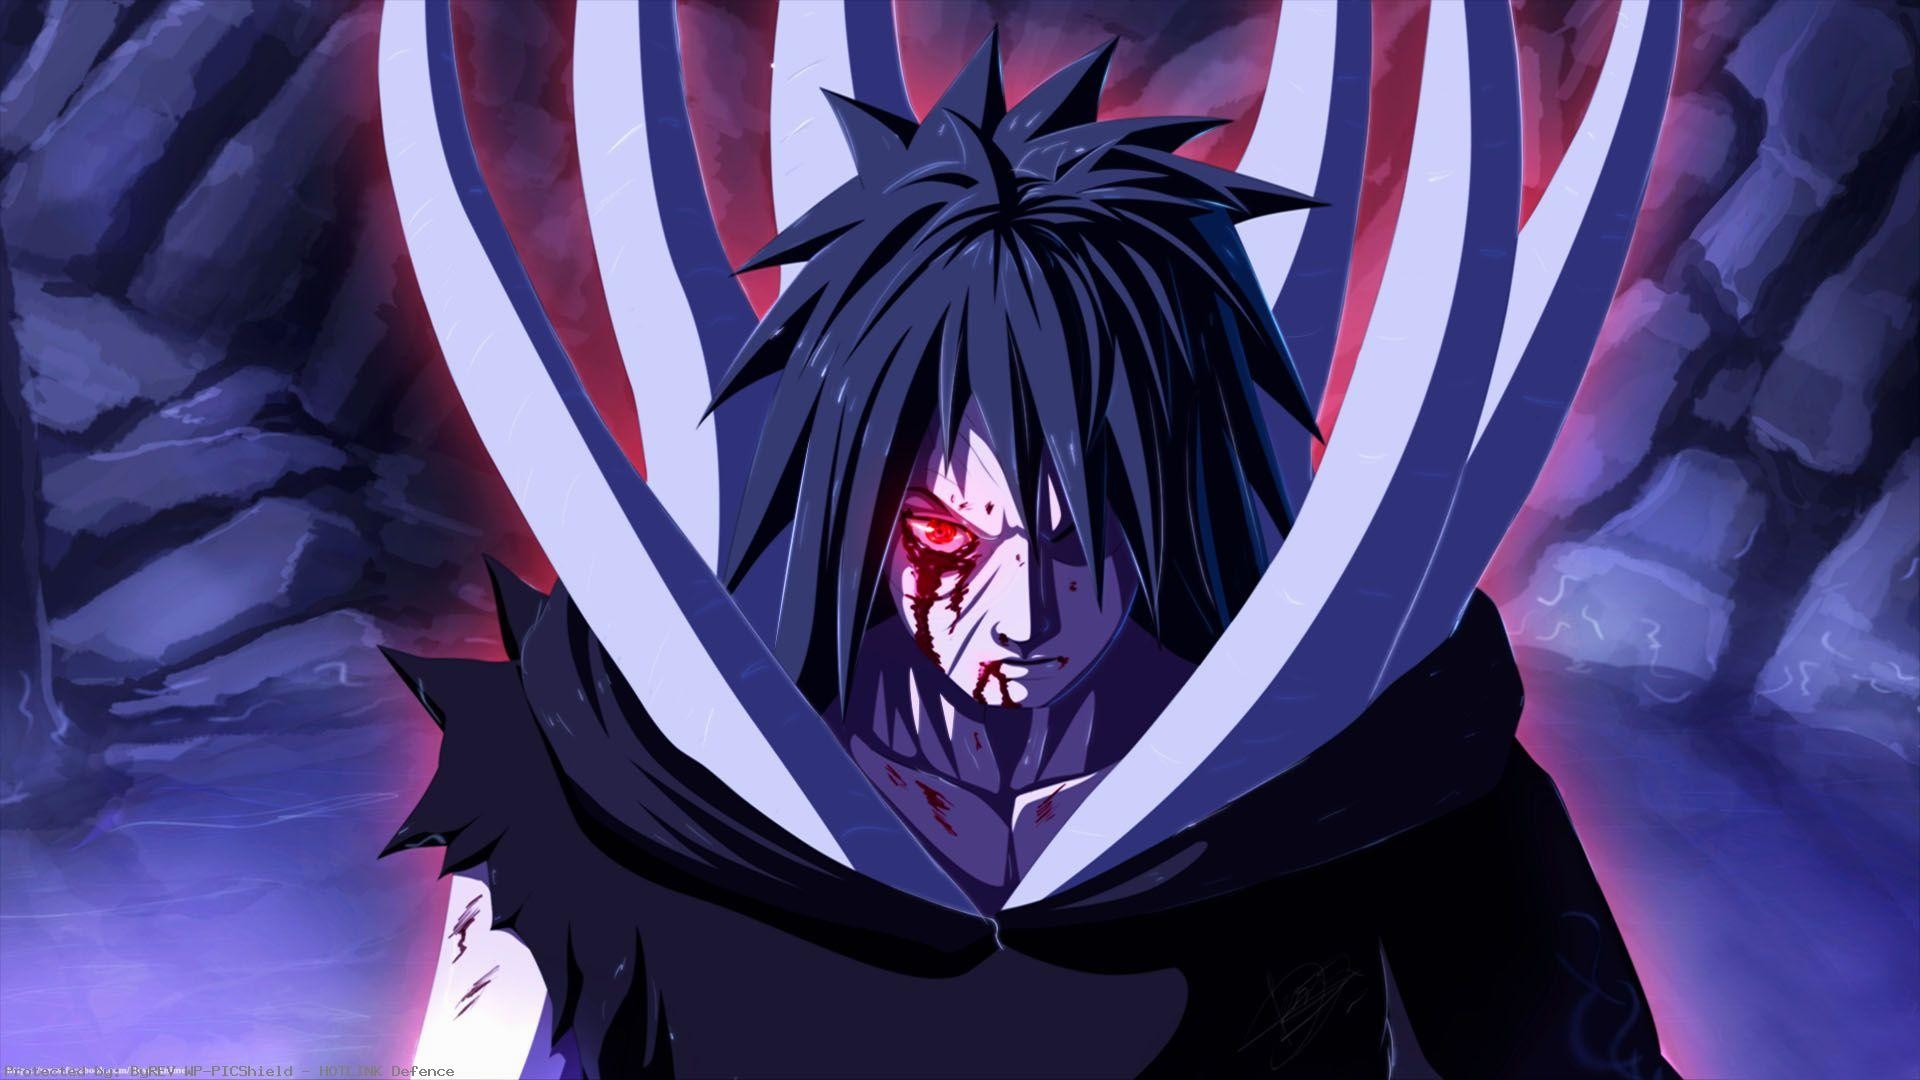 Obito-Kamui-HD-s-Backgrounds-wallpaper-wpt1007627